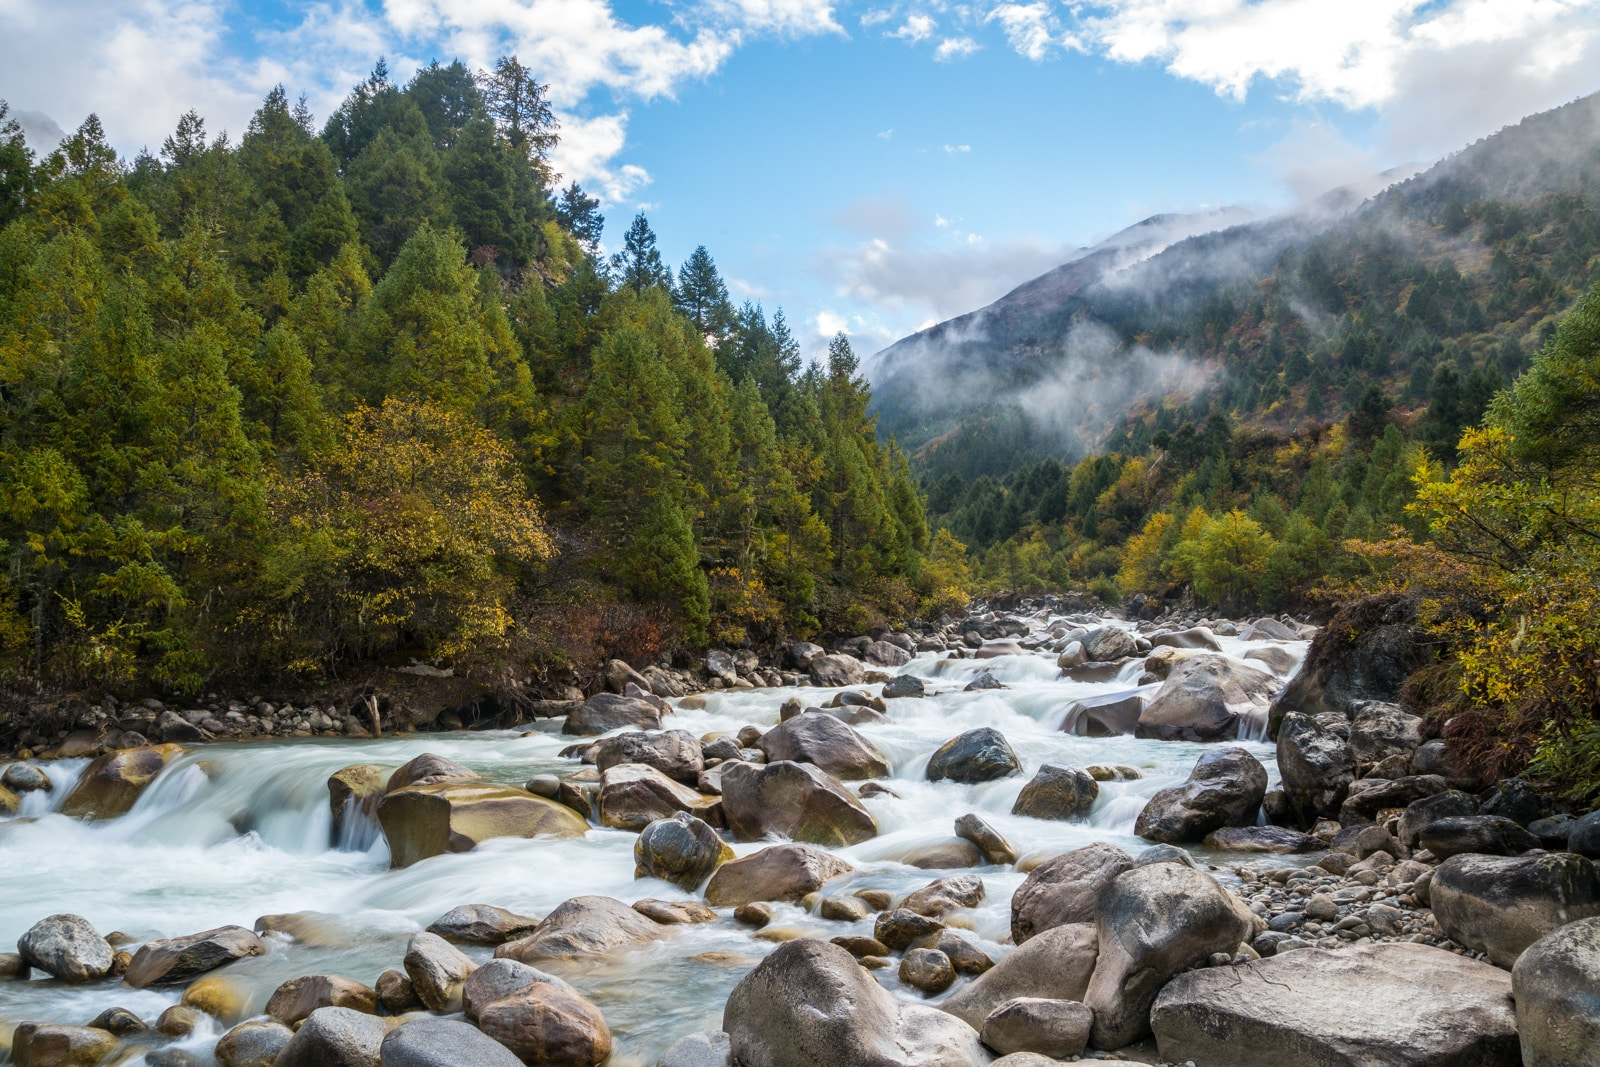 Photos of the Gasa - Laya trek in Bhutan - Long exposure of a river running past the campsite - Lost With Purpose travel blog